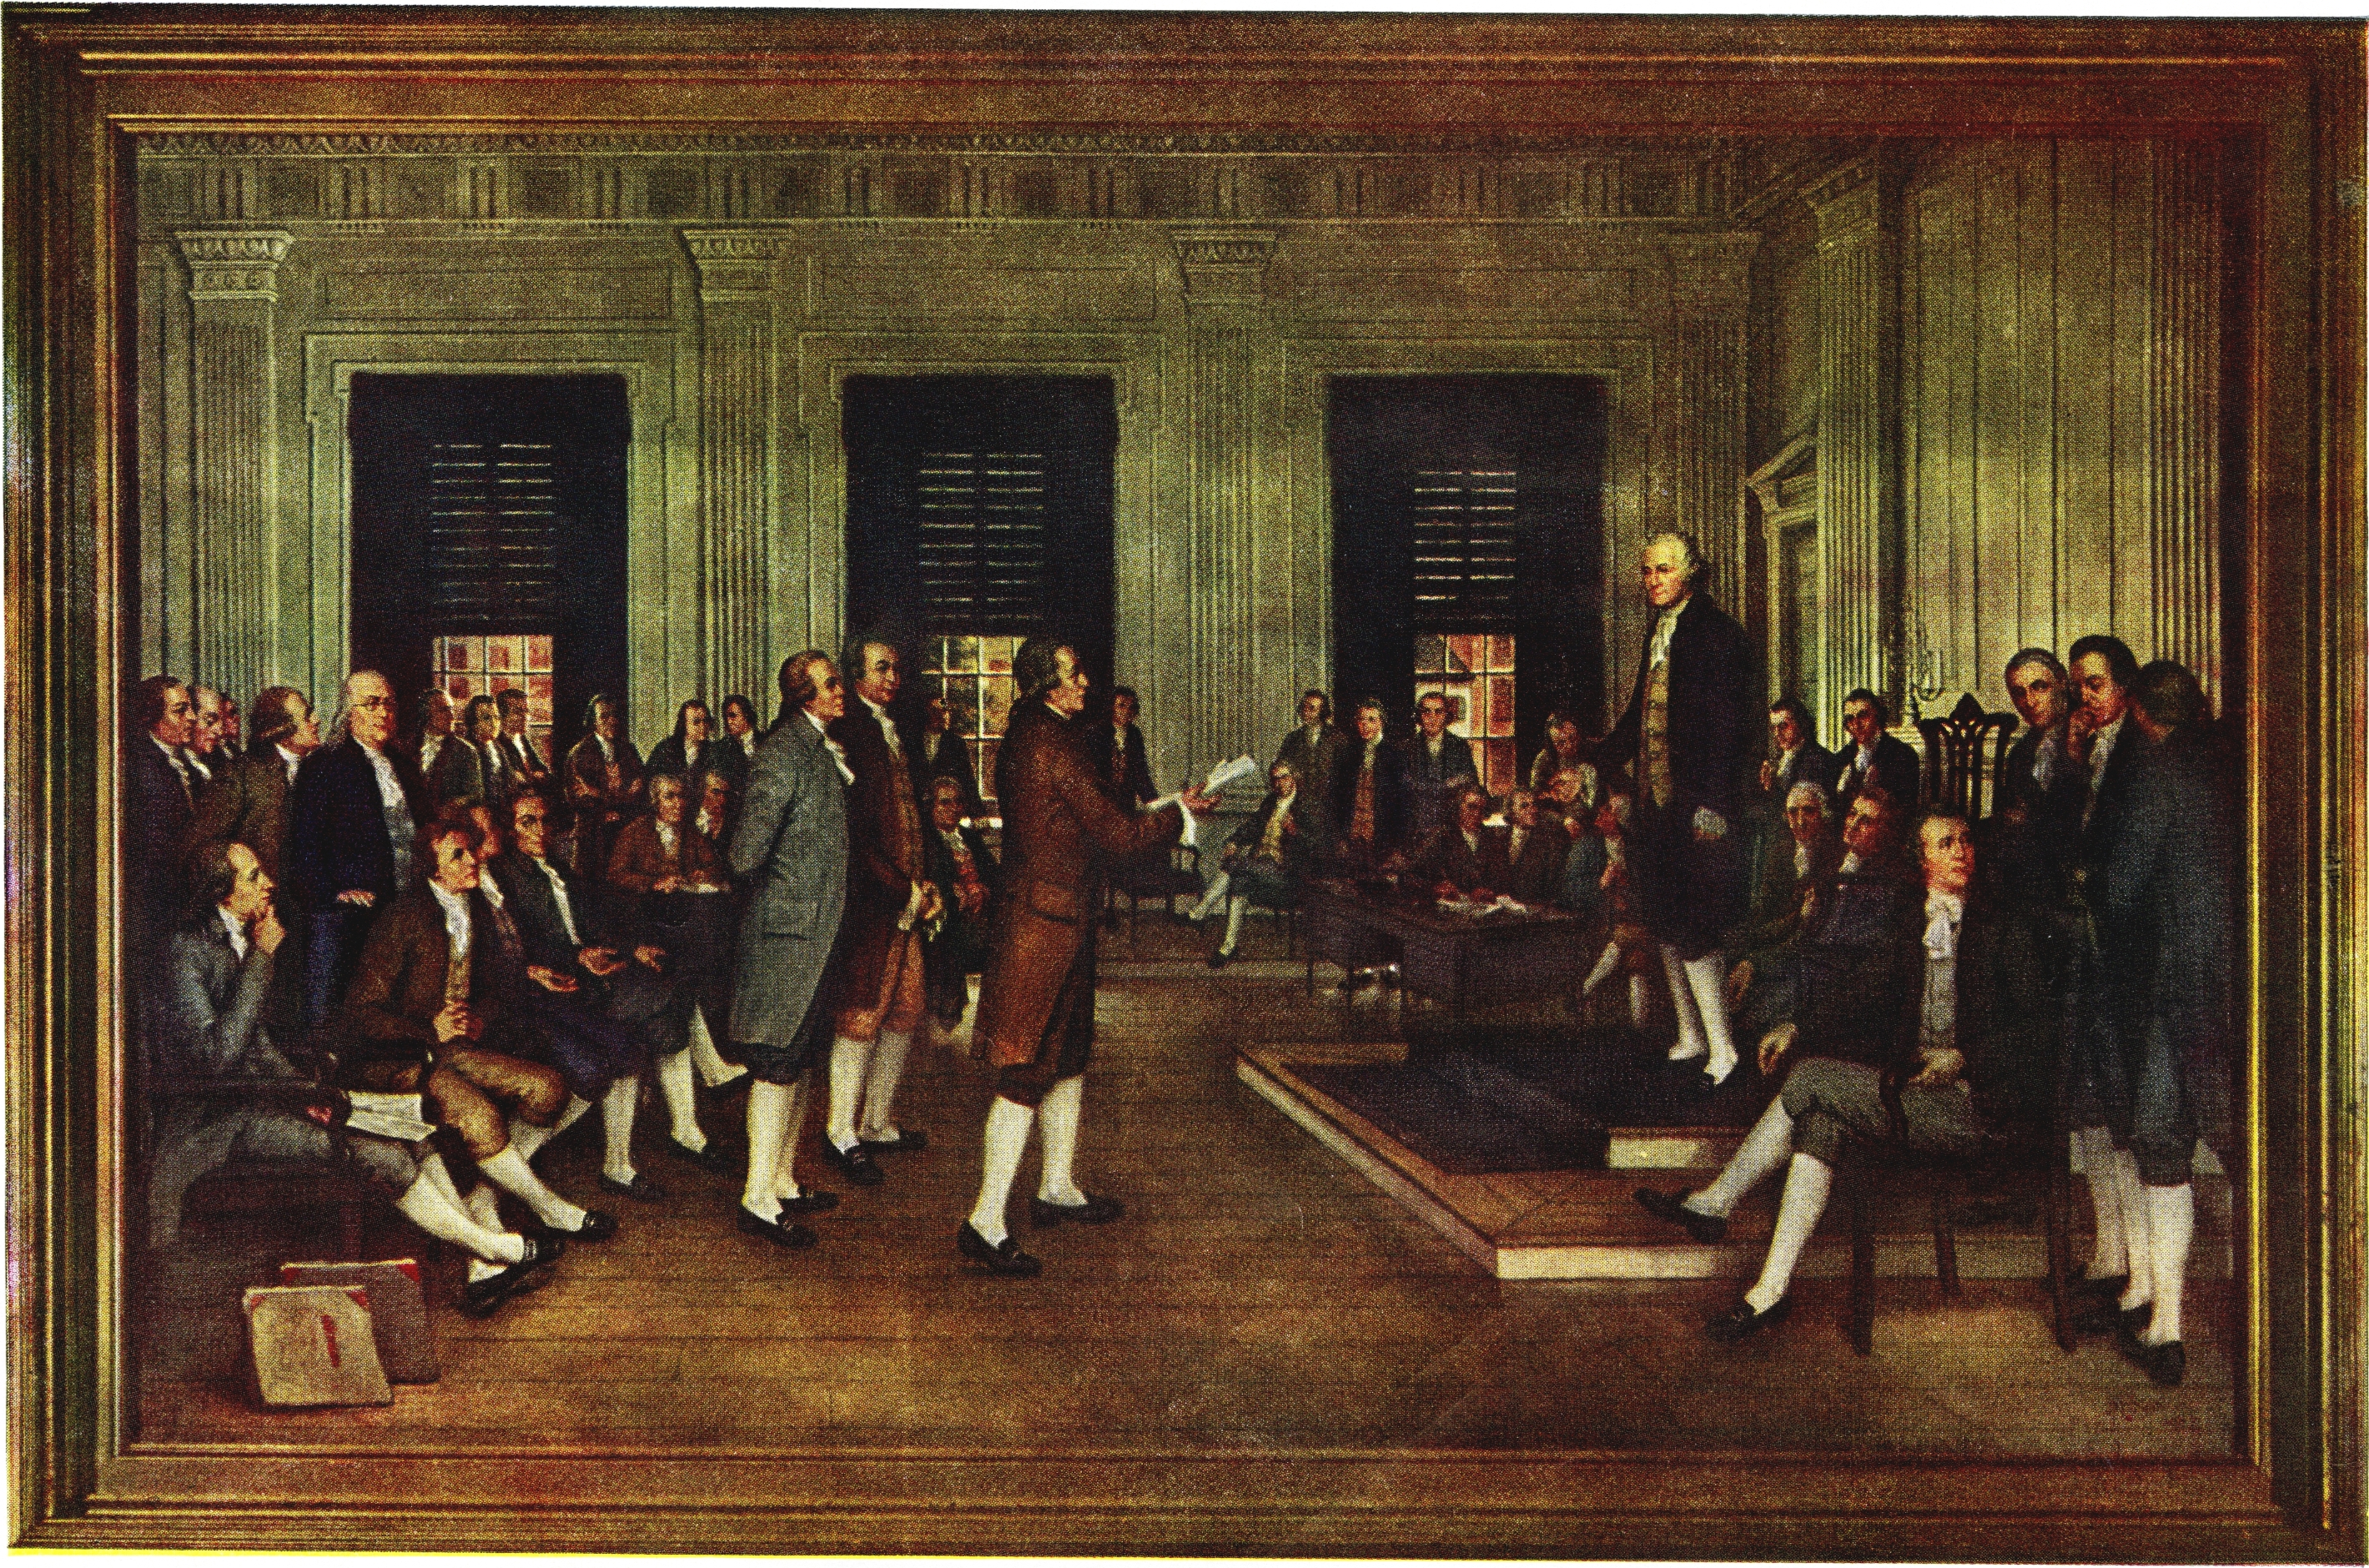 constitutional convention The constitutional convention was held between may and september 1787 in philadelphia, pennsylvania to deal with the glaring weaknesses with the articles of confederation.